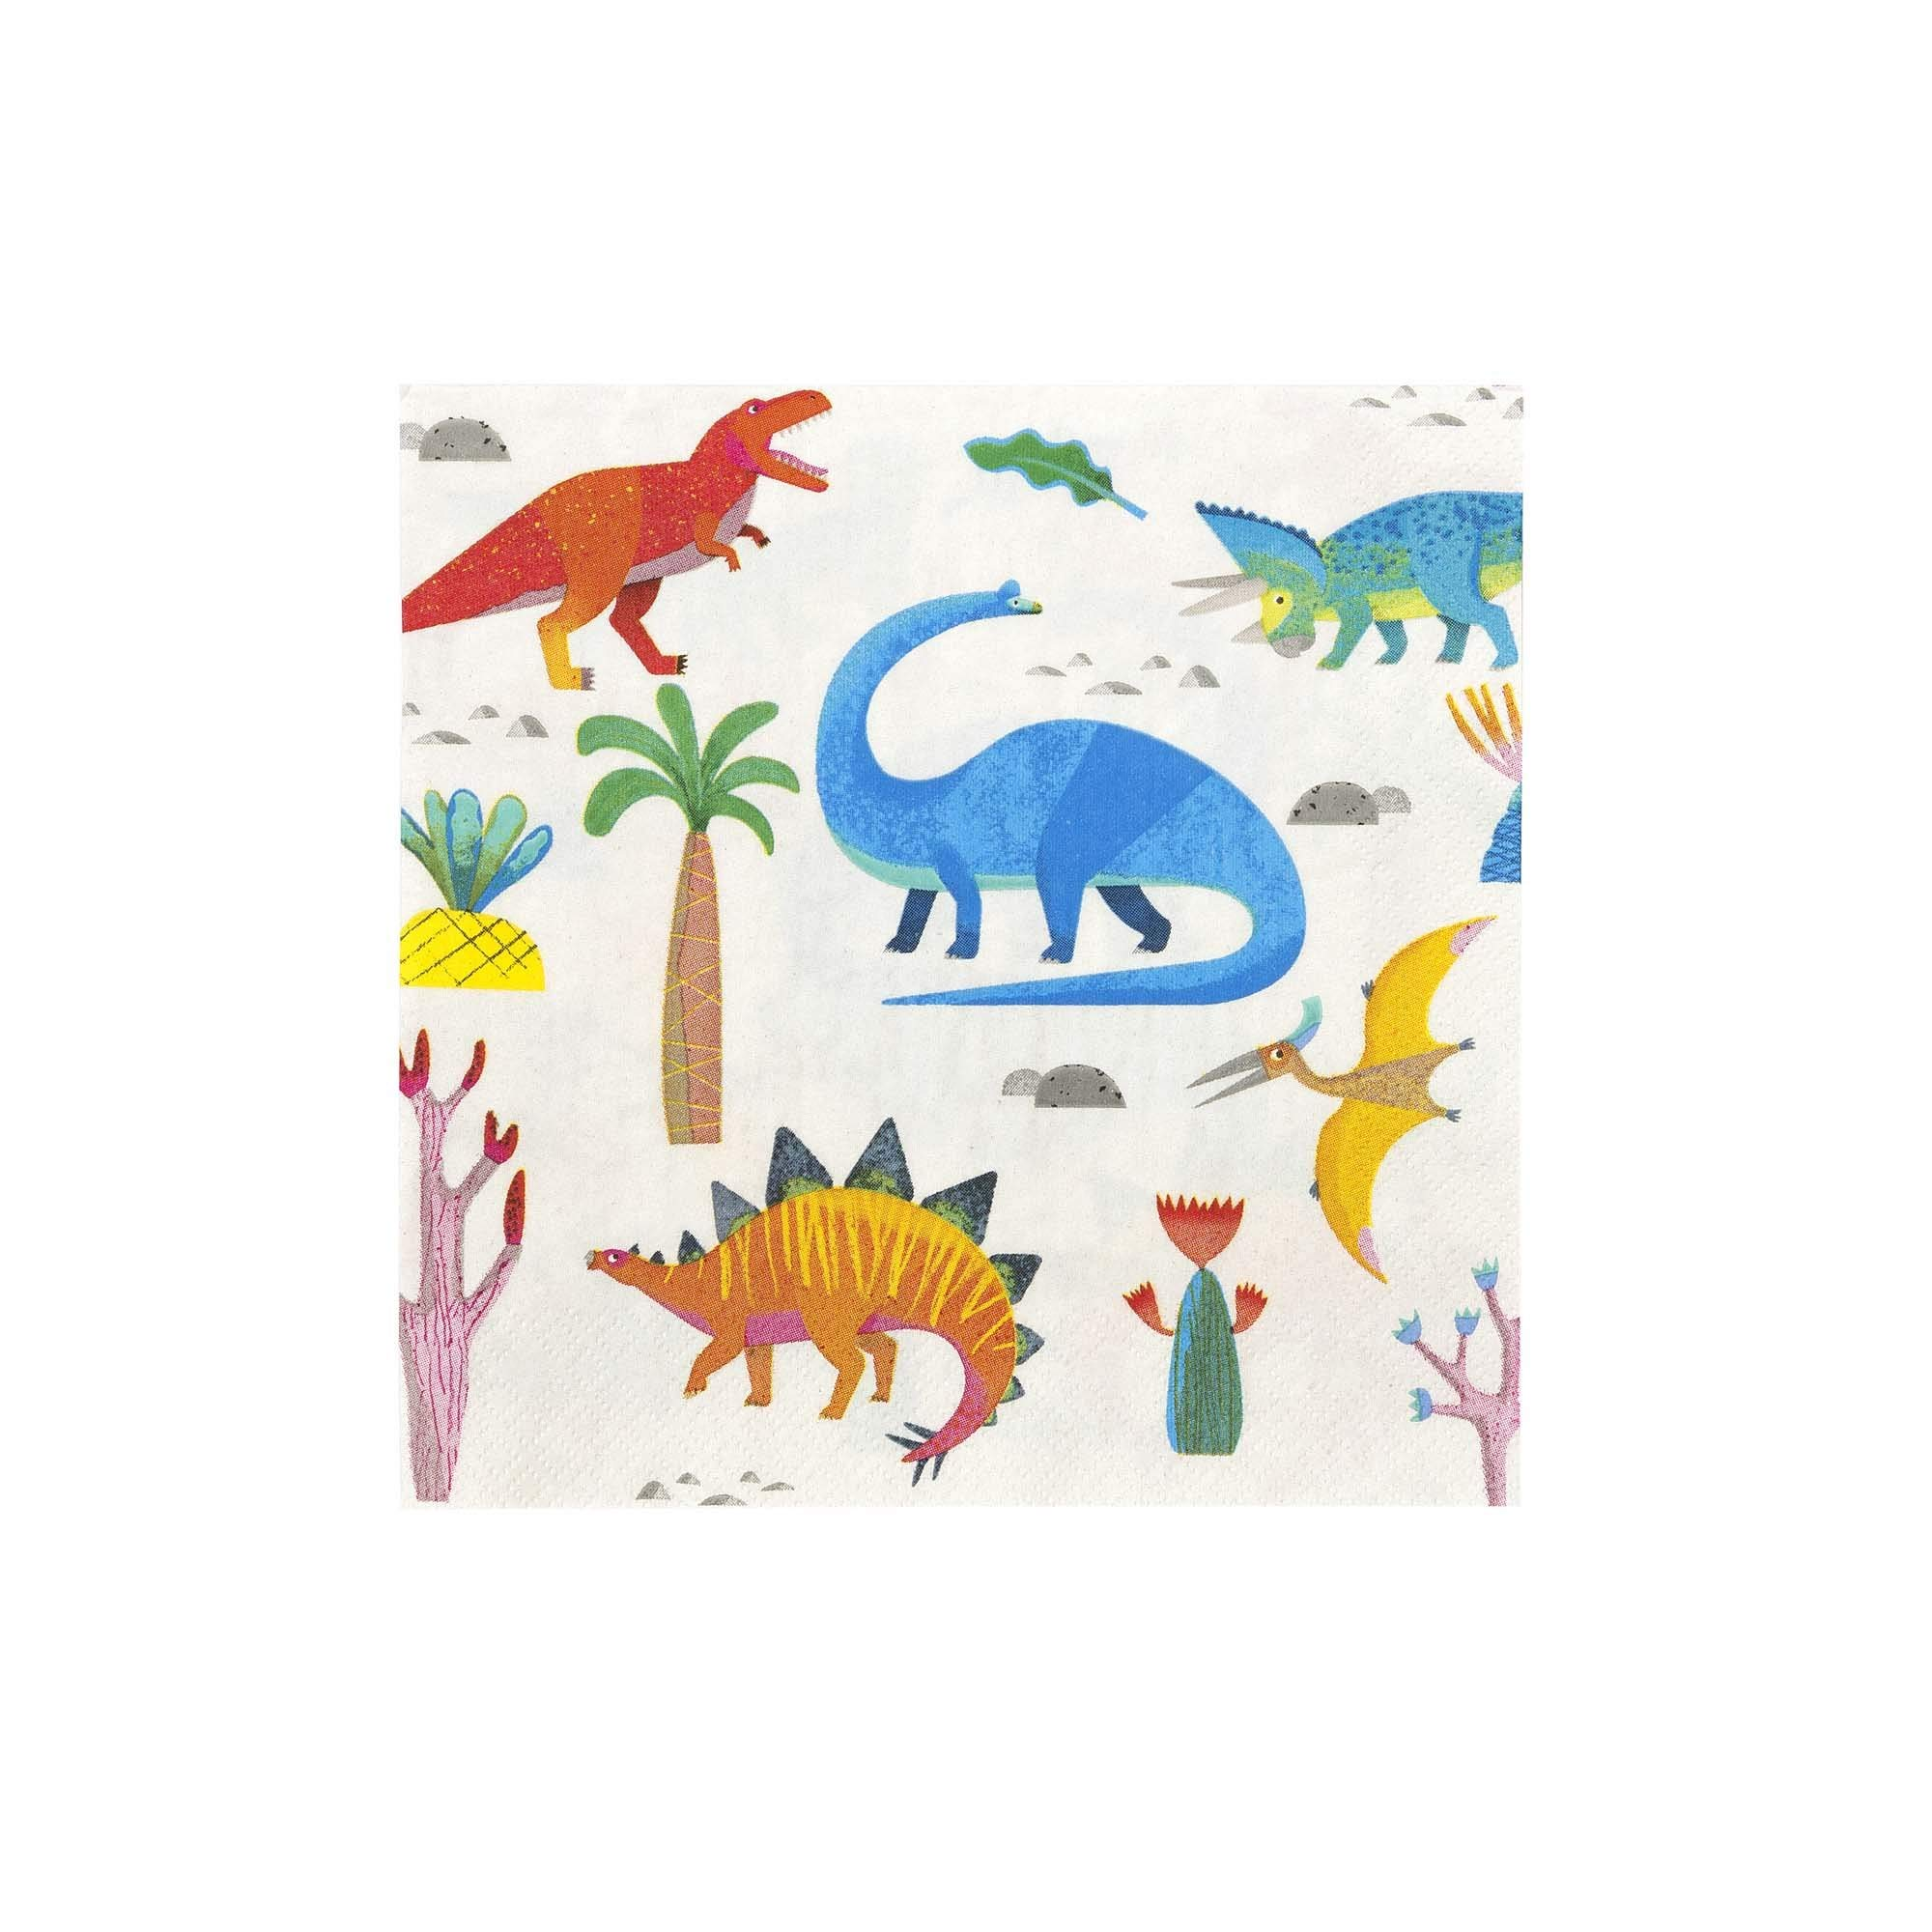 Dinosaur Party Supplies Dinosaur Birthday Decorations Kids Birthday Party Napkins Dinosaur Napkins Paper Napkins 6.5''sq Folded, Pack 40 by Talking Tables (Image #1)